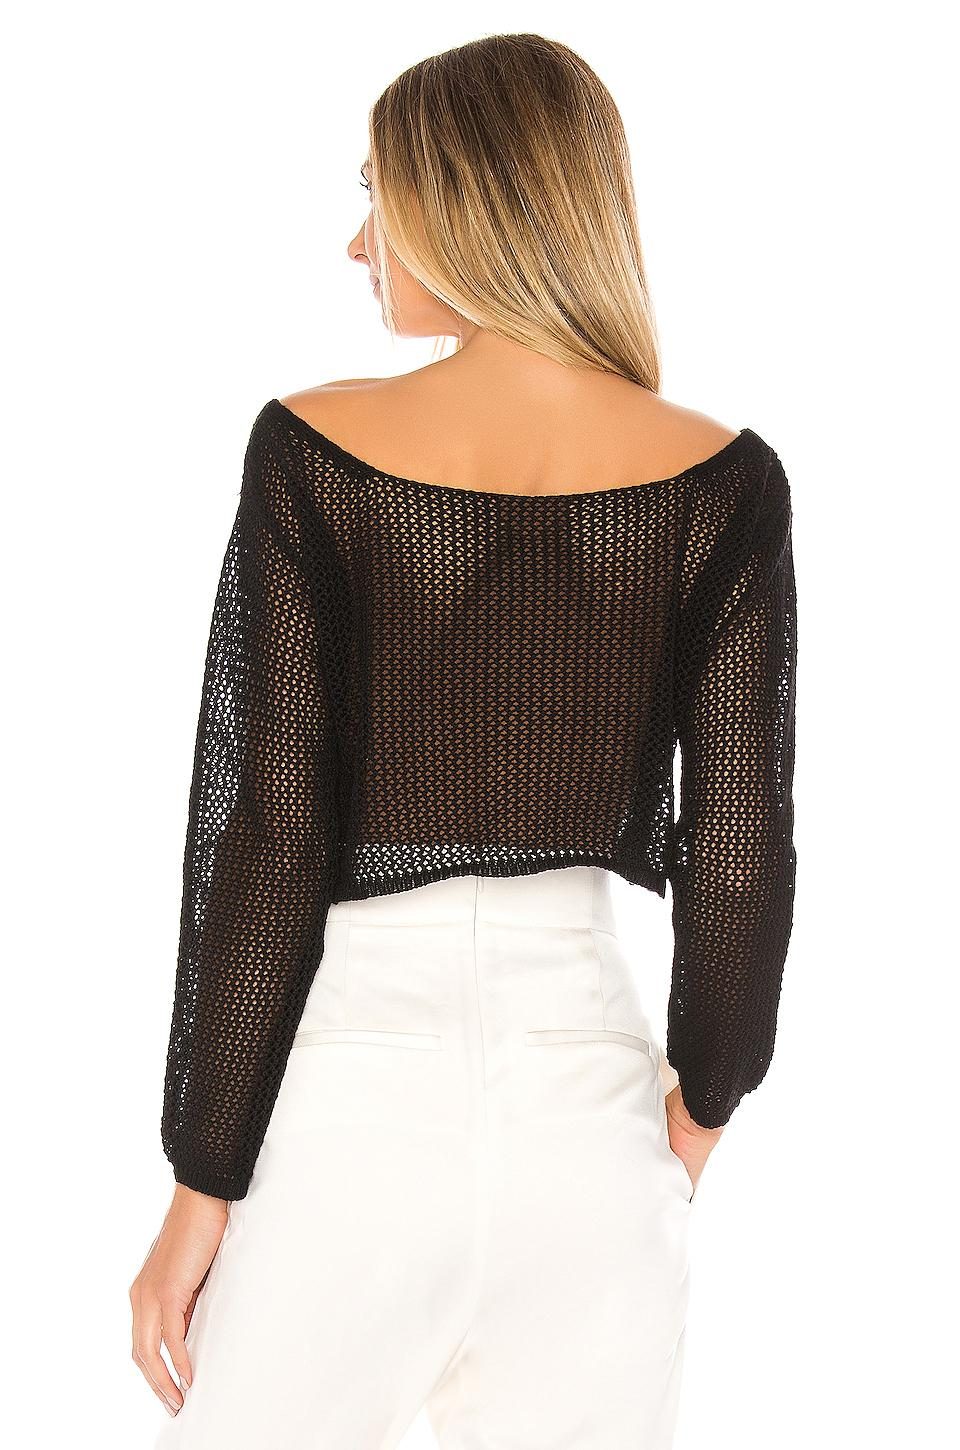 Top Cropped Maille Crochet Abby superdown en coloris Noir